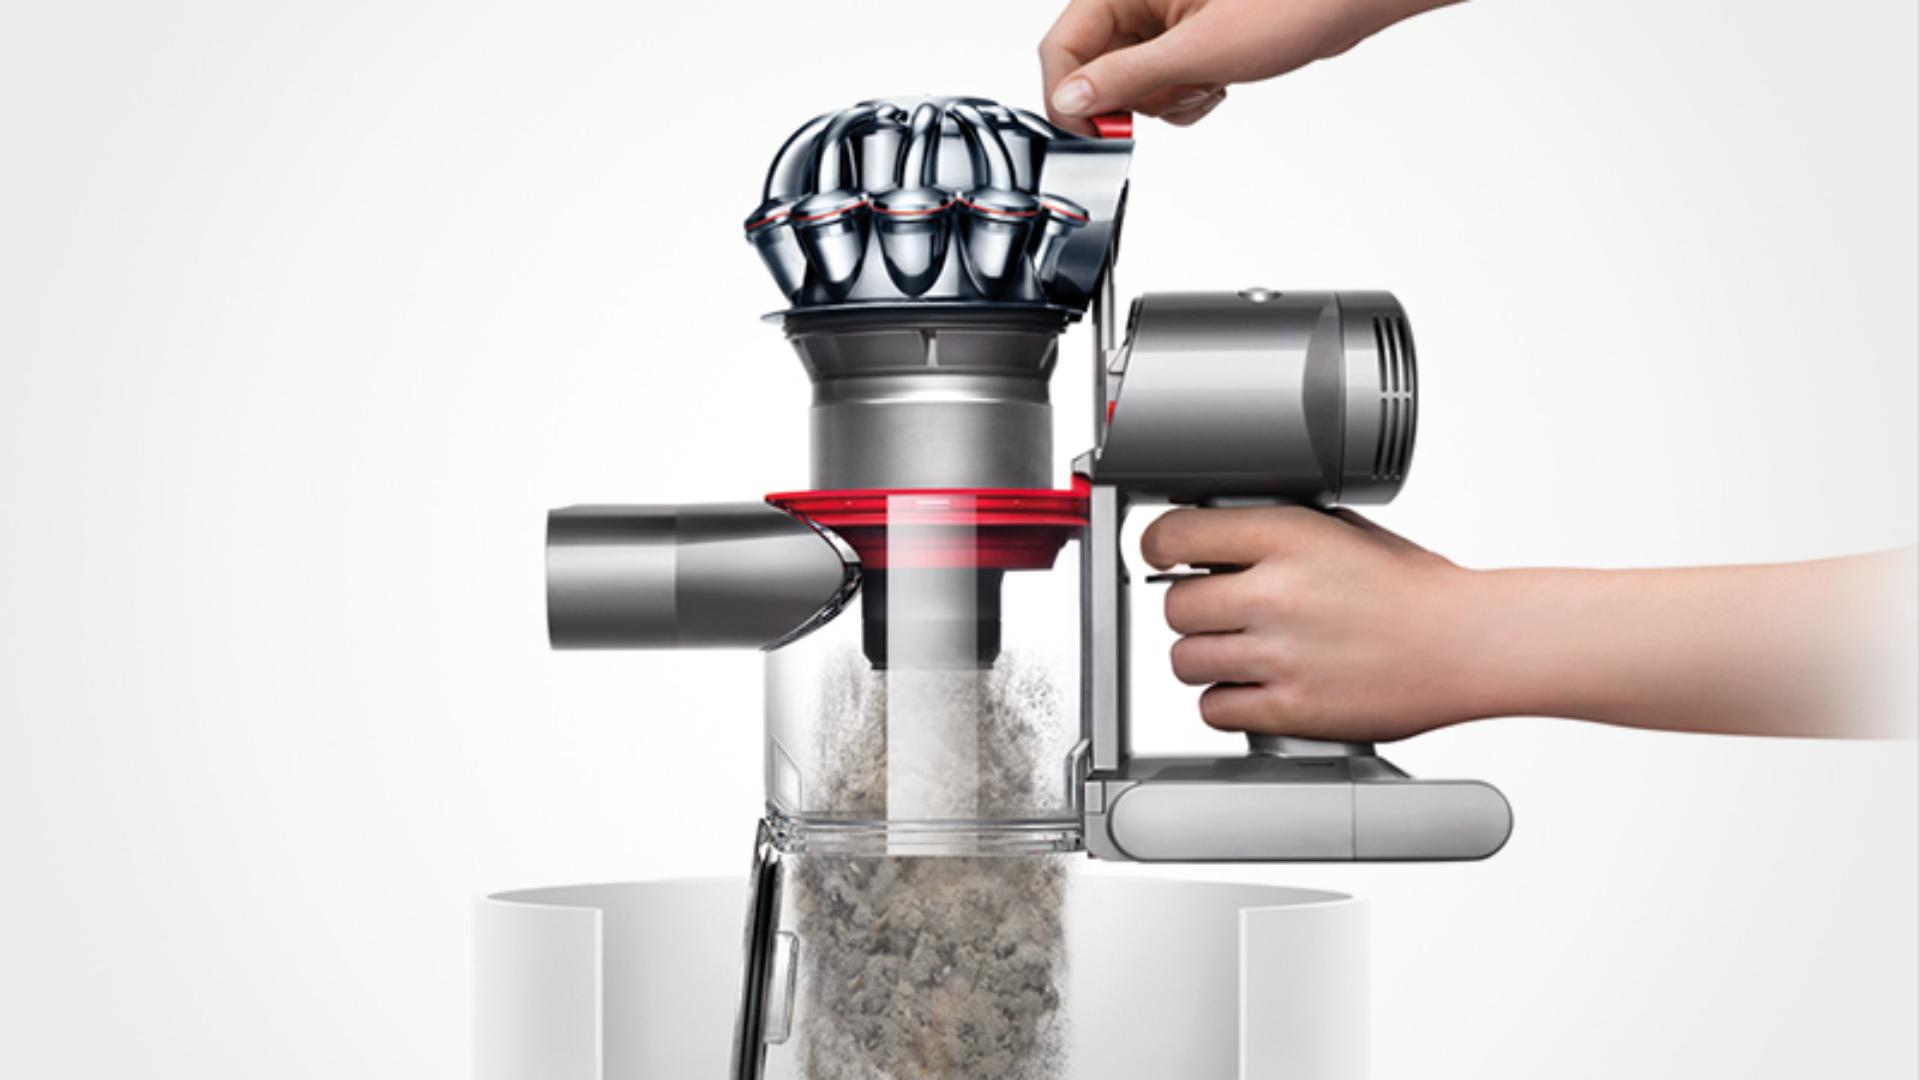 See the Dyson V8 Absolute vacuum's no-touch bin emptying mechanism.